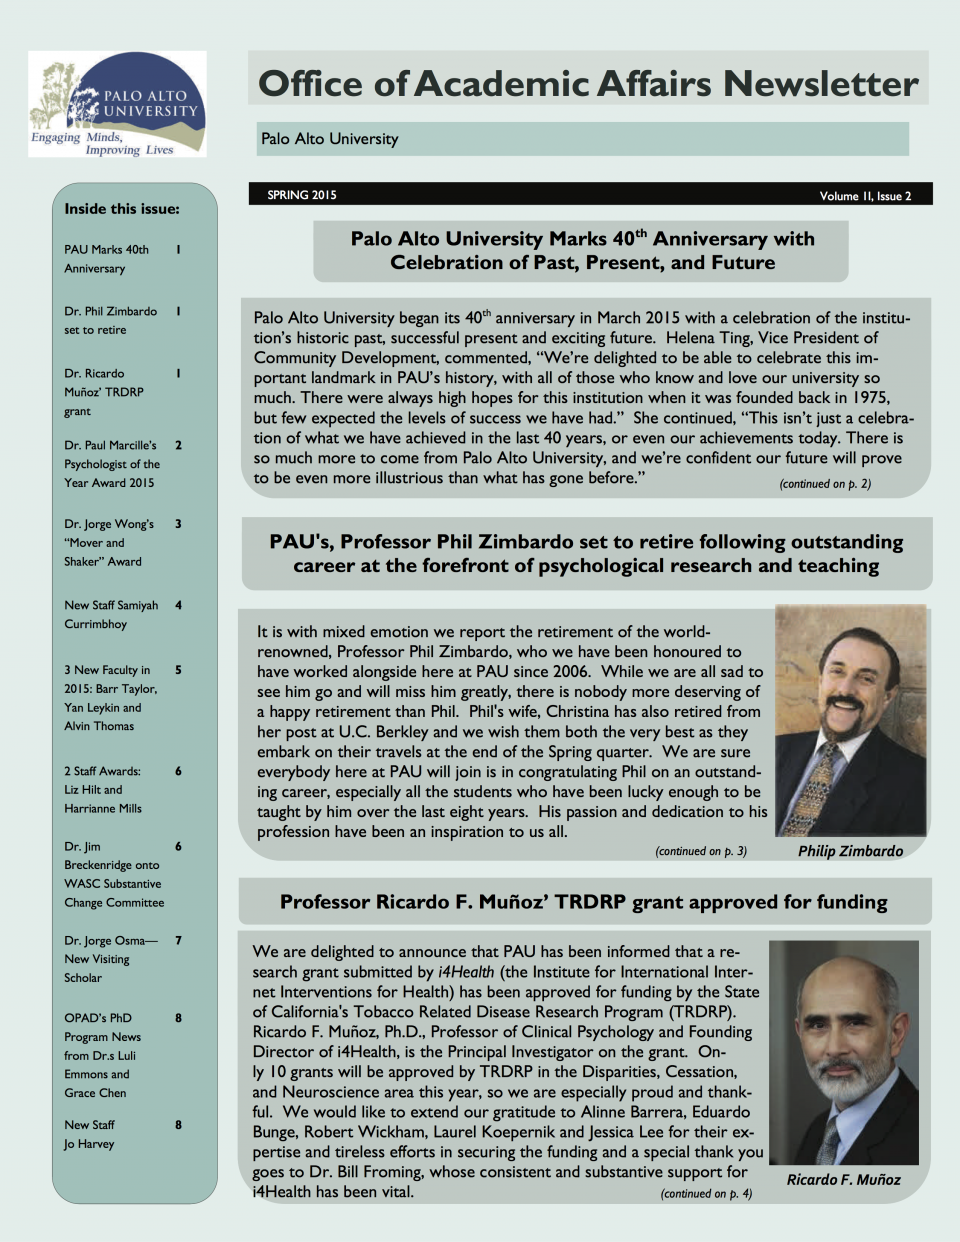 OAA Newsletter Spring 2015 Page 1